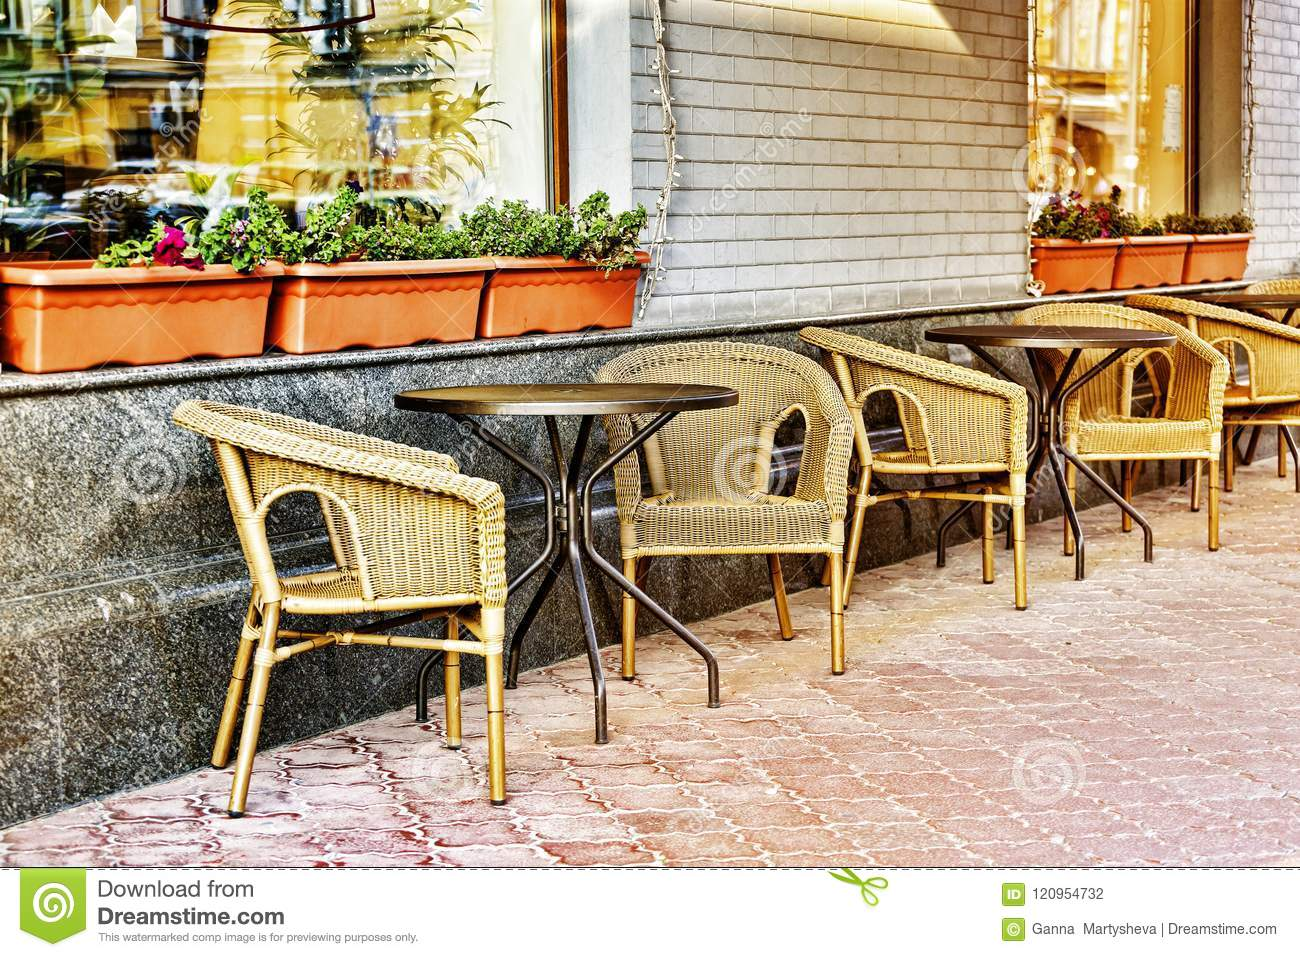 Cafe Restaurant City Europe Outdoor Food Bistro Urban Travel Table Dinner Stock Photo Image Of Culture Food 120954732